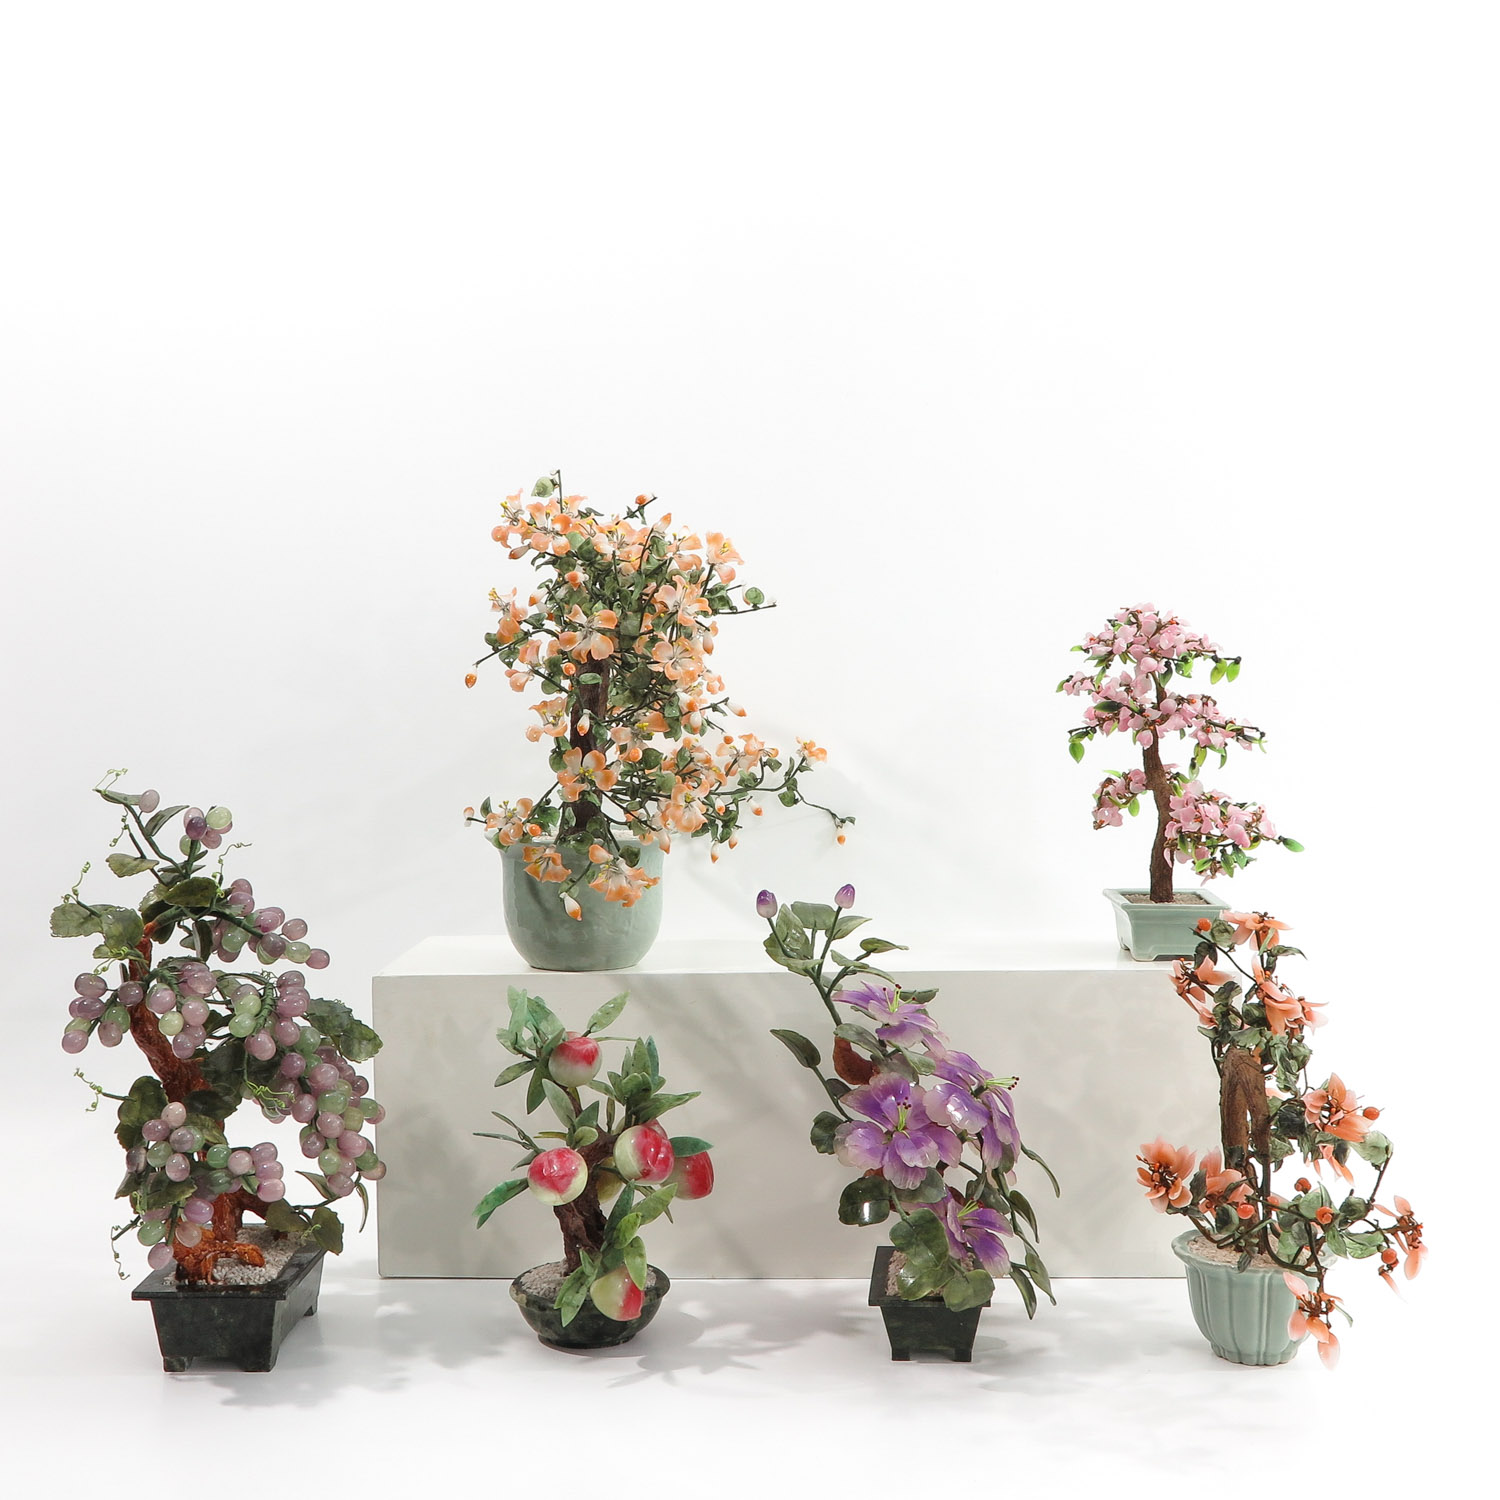 A Collection of Floral Arrangements - Image 4 of 10